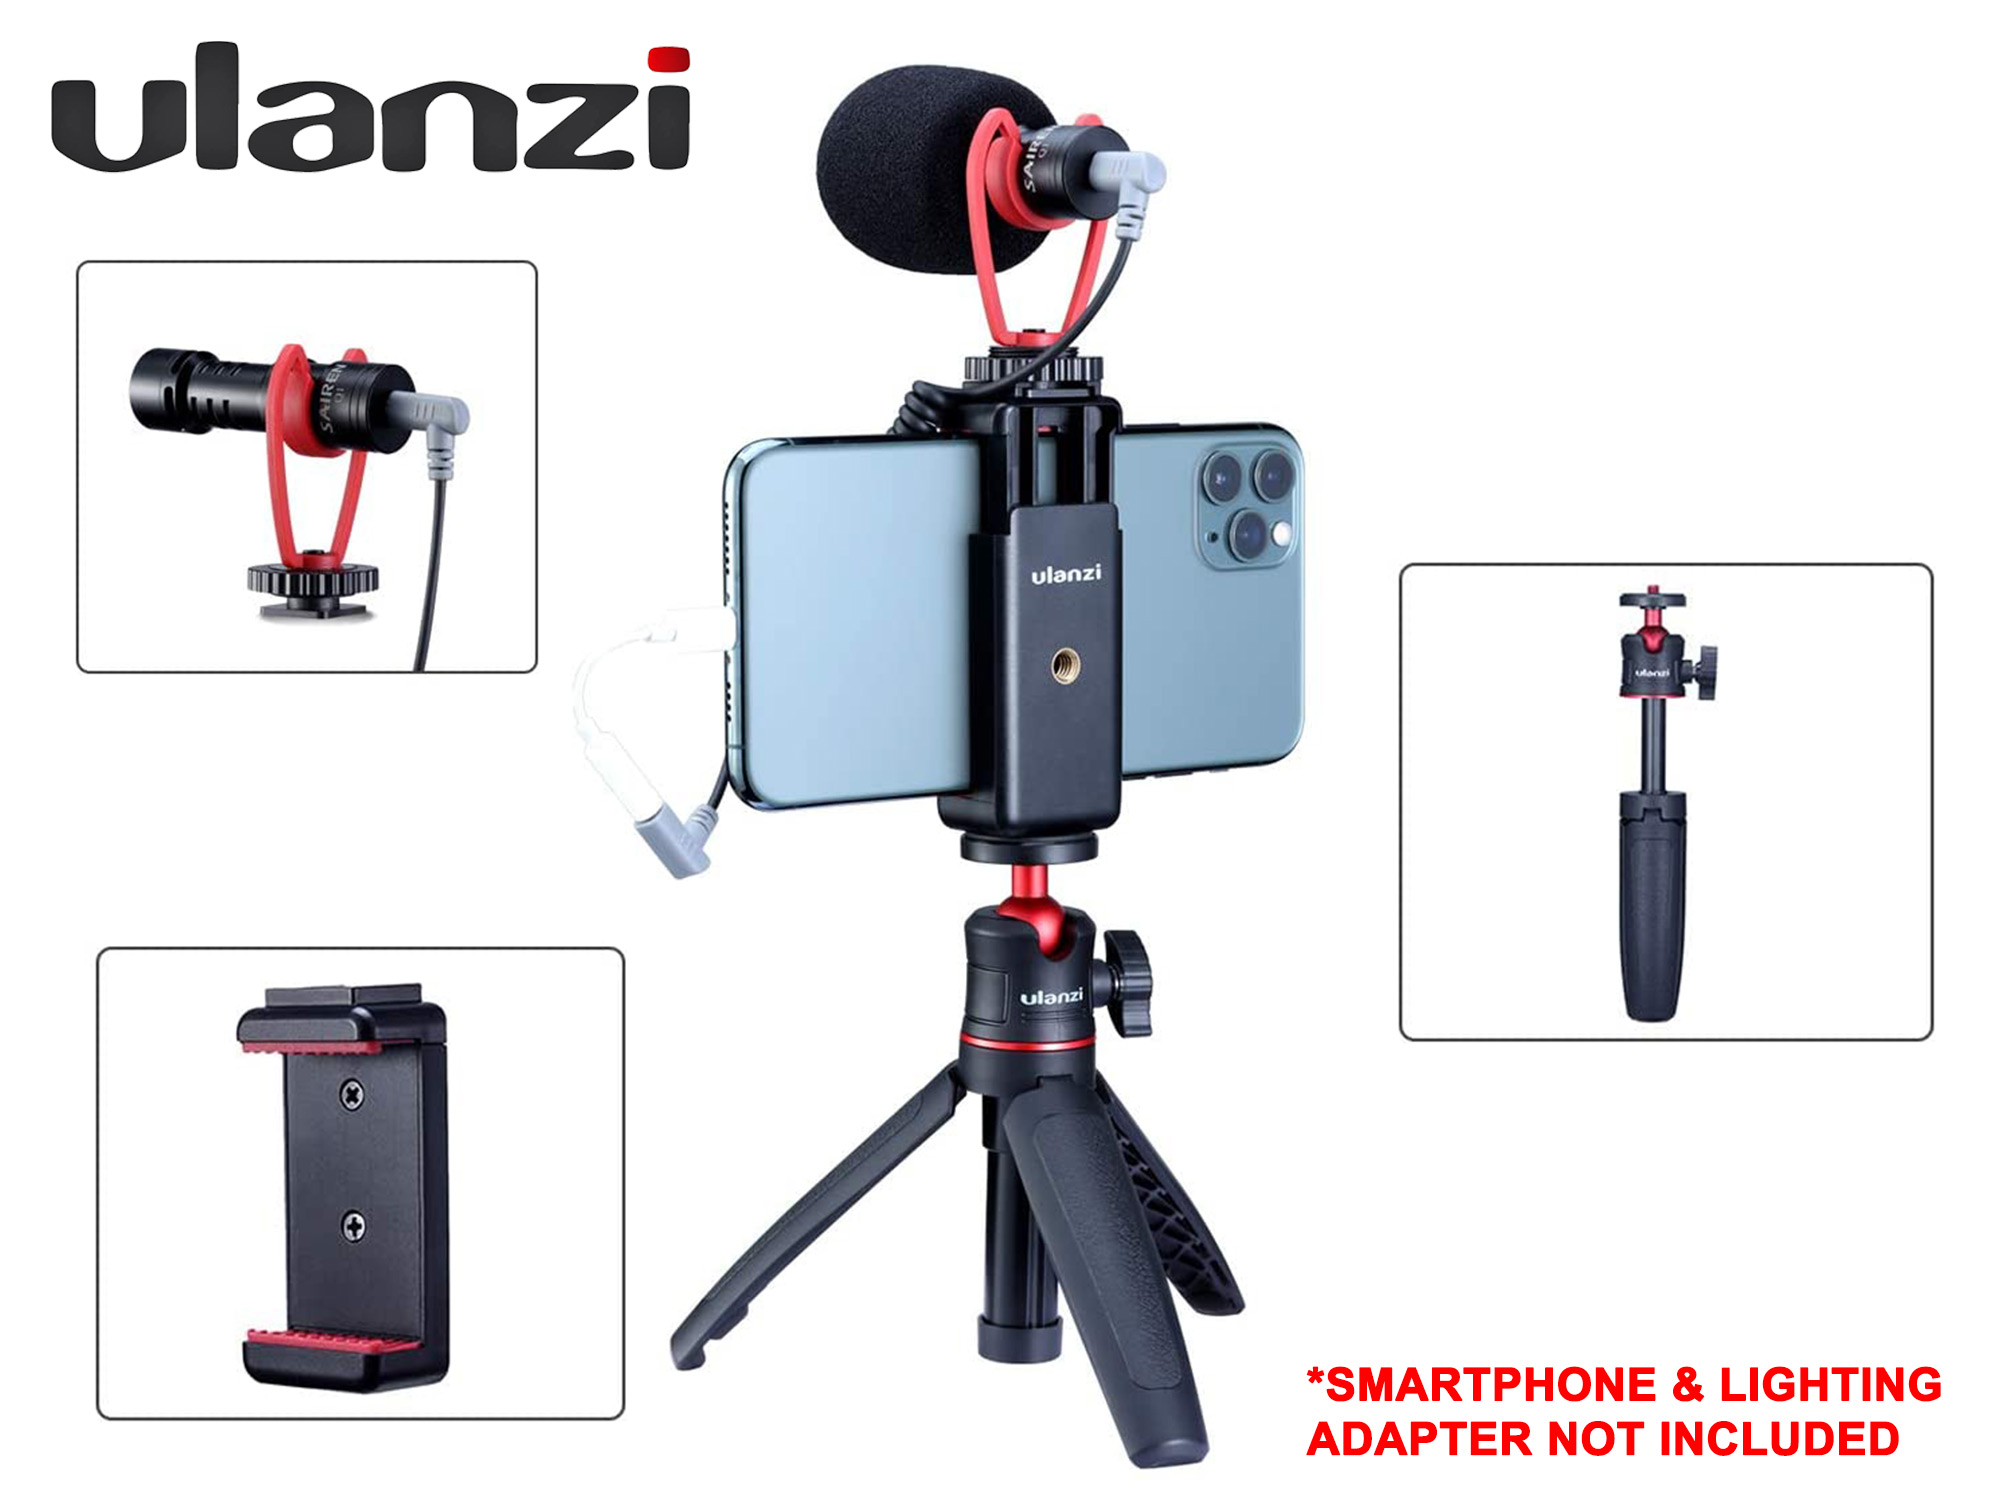 Ulanzi Vlogging Kit - Microphone + Mini Extendable Tripod + Phone Mount